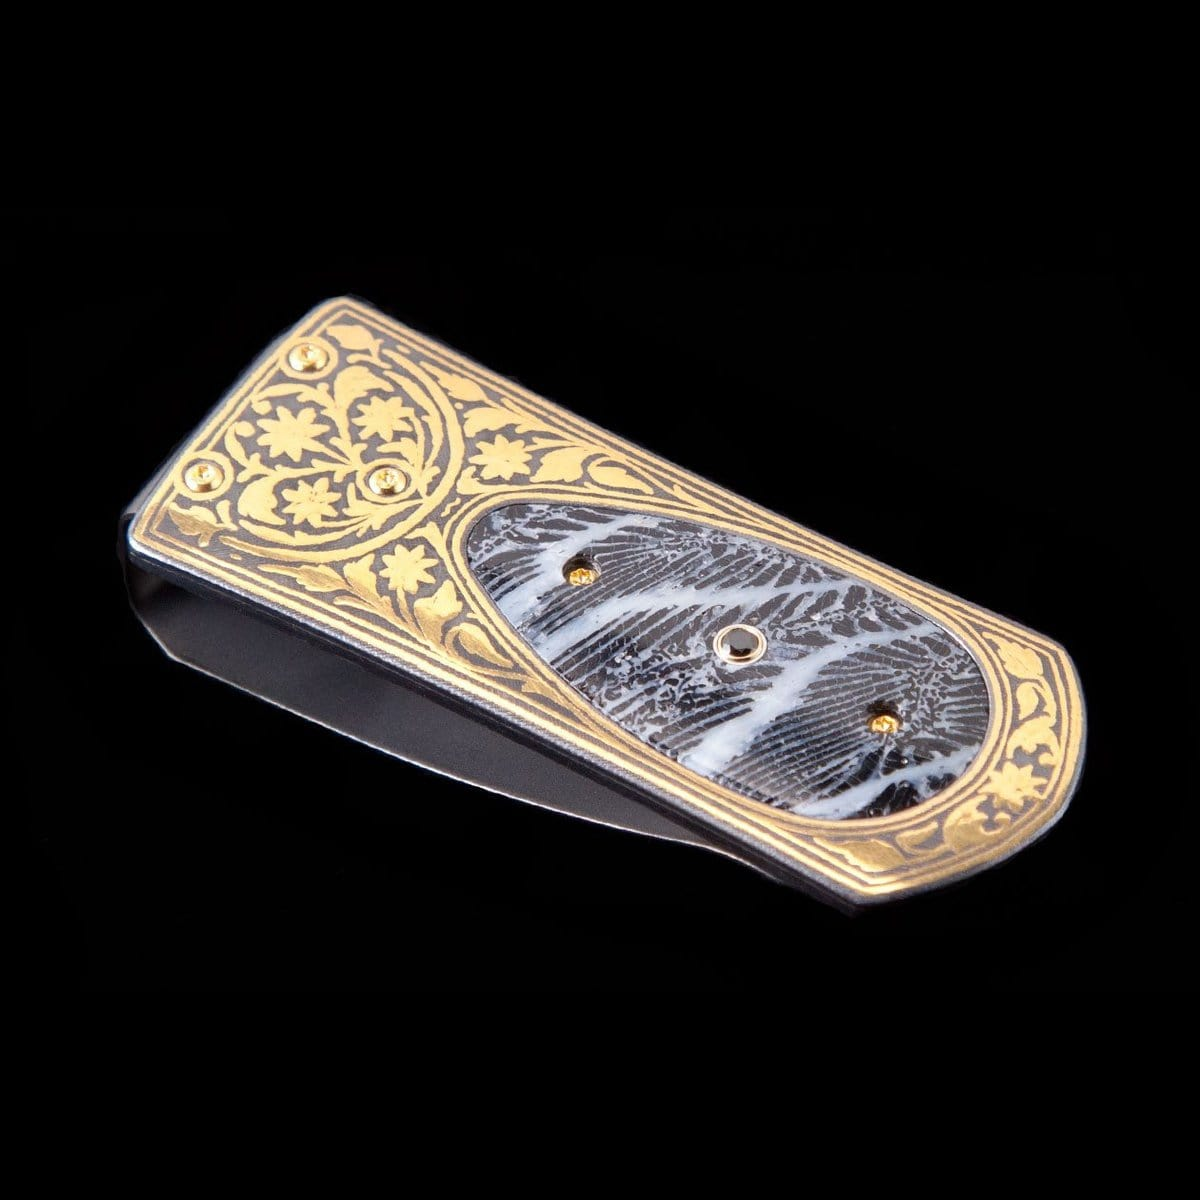 Zurich Cay Limited Edition Money Clip - M3 CAY-William Henry-Renee Taylor Gallery